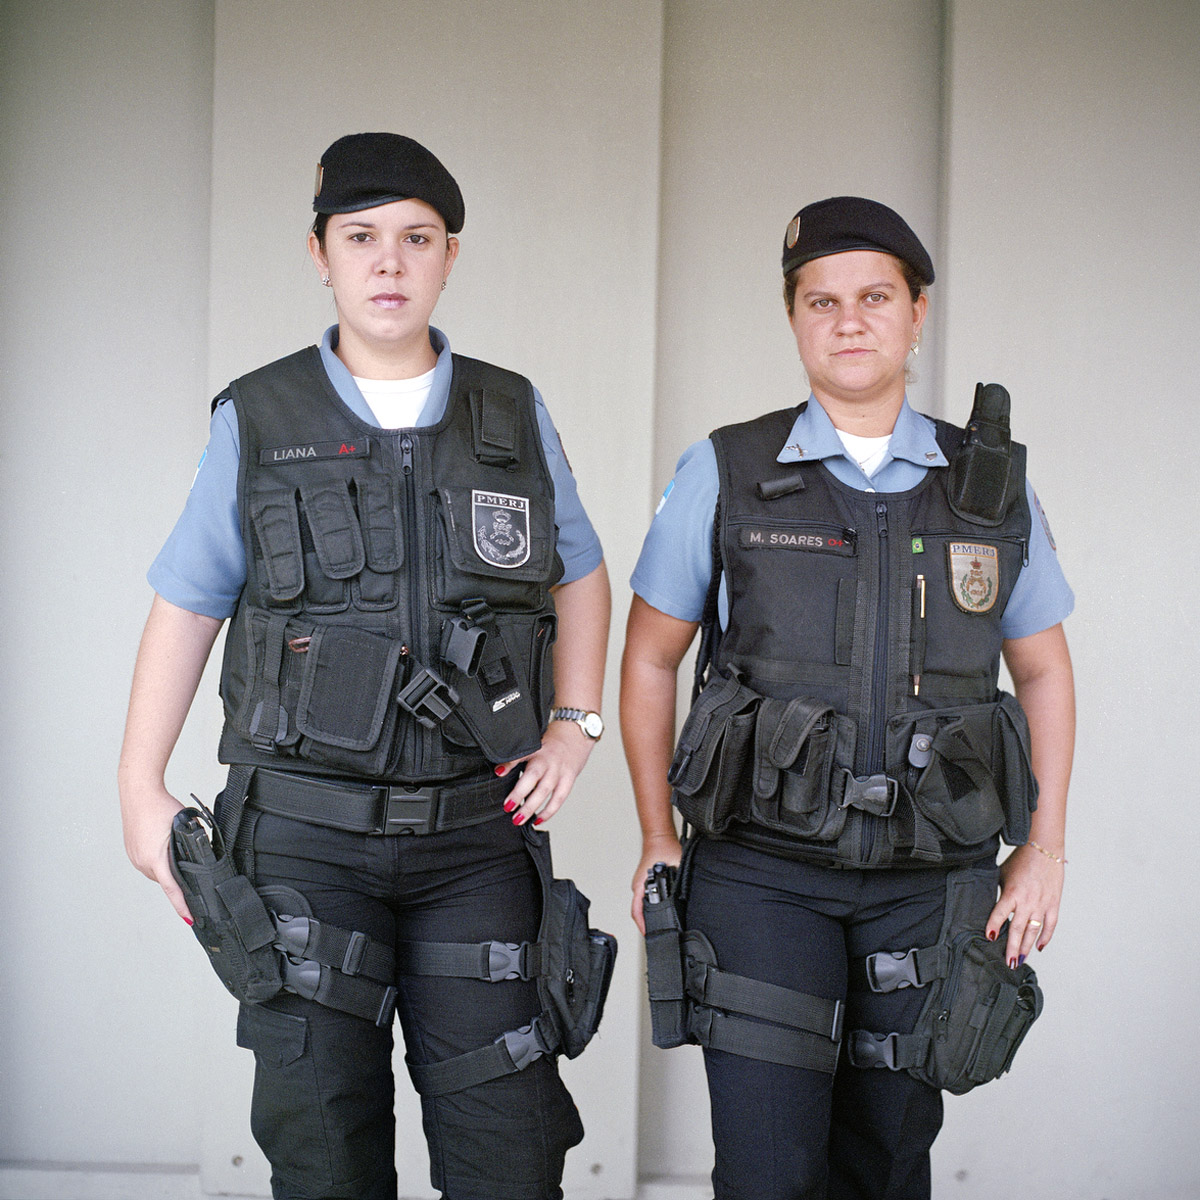 Patrol officers Liana Brum, 29, left, and Michelle Soares, 27, right, with the Rapid Response Team of the Pacifying Police Unit (UPP), in Complexo do Caju, Rio de Janeiro, Brazil.